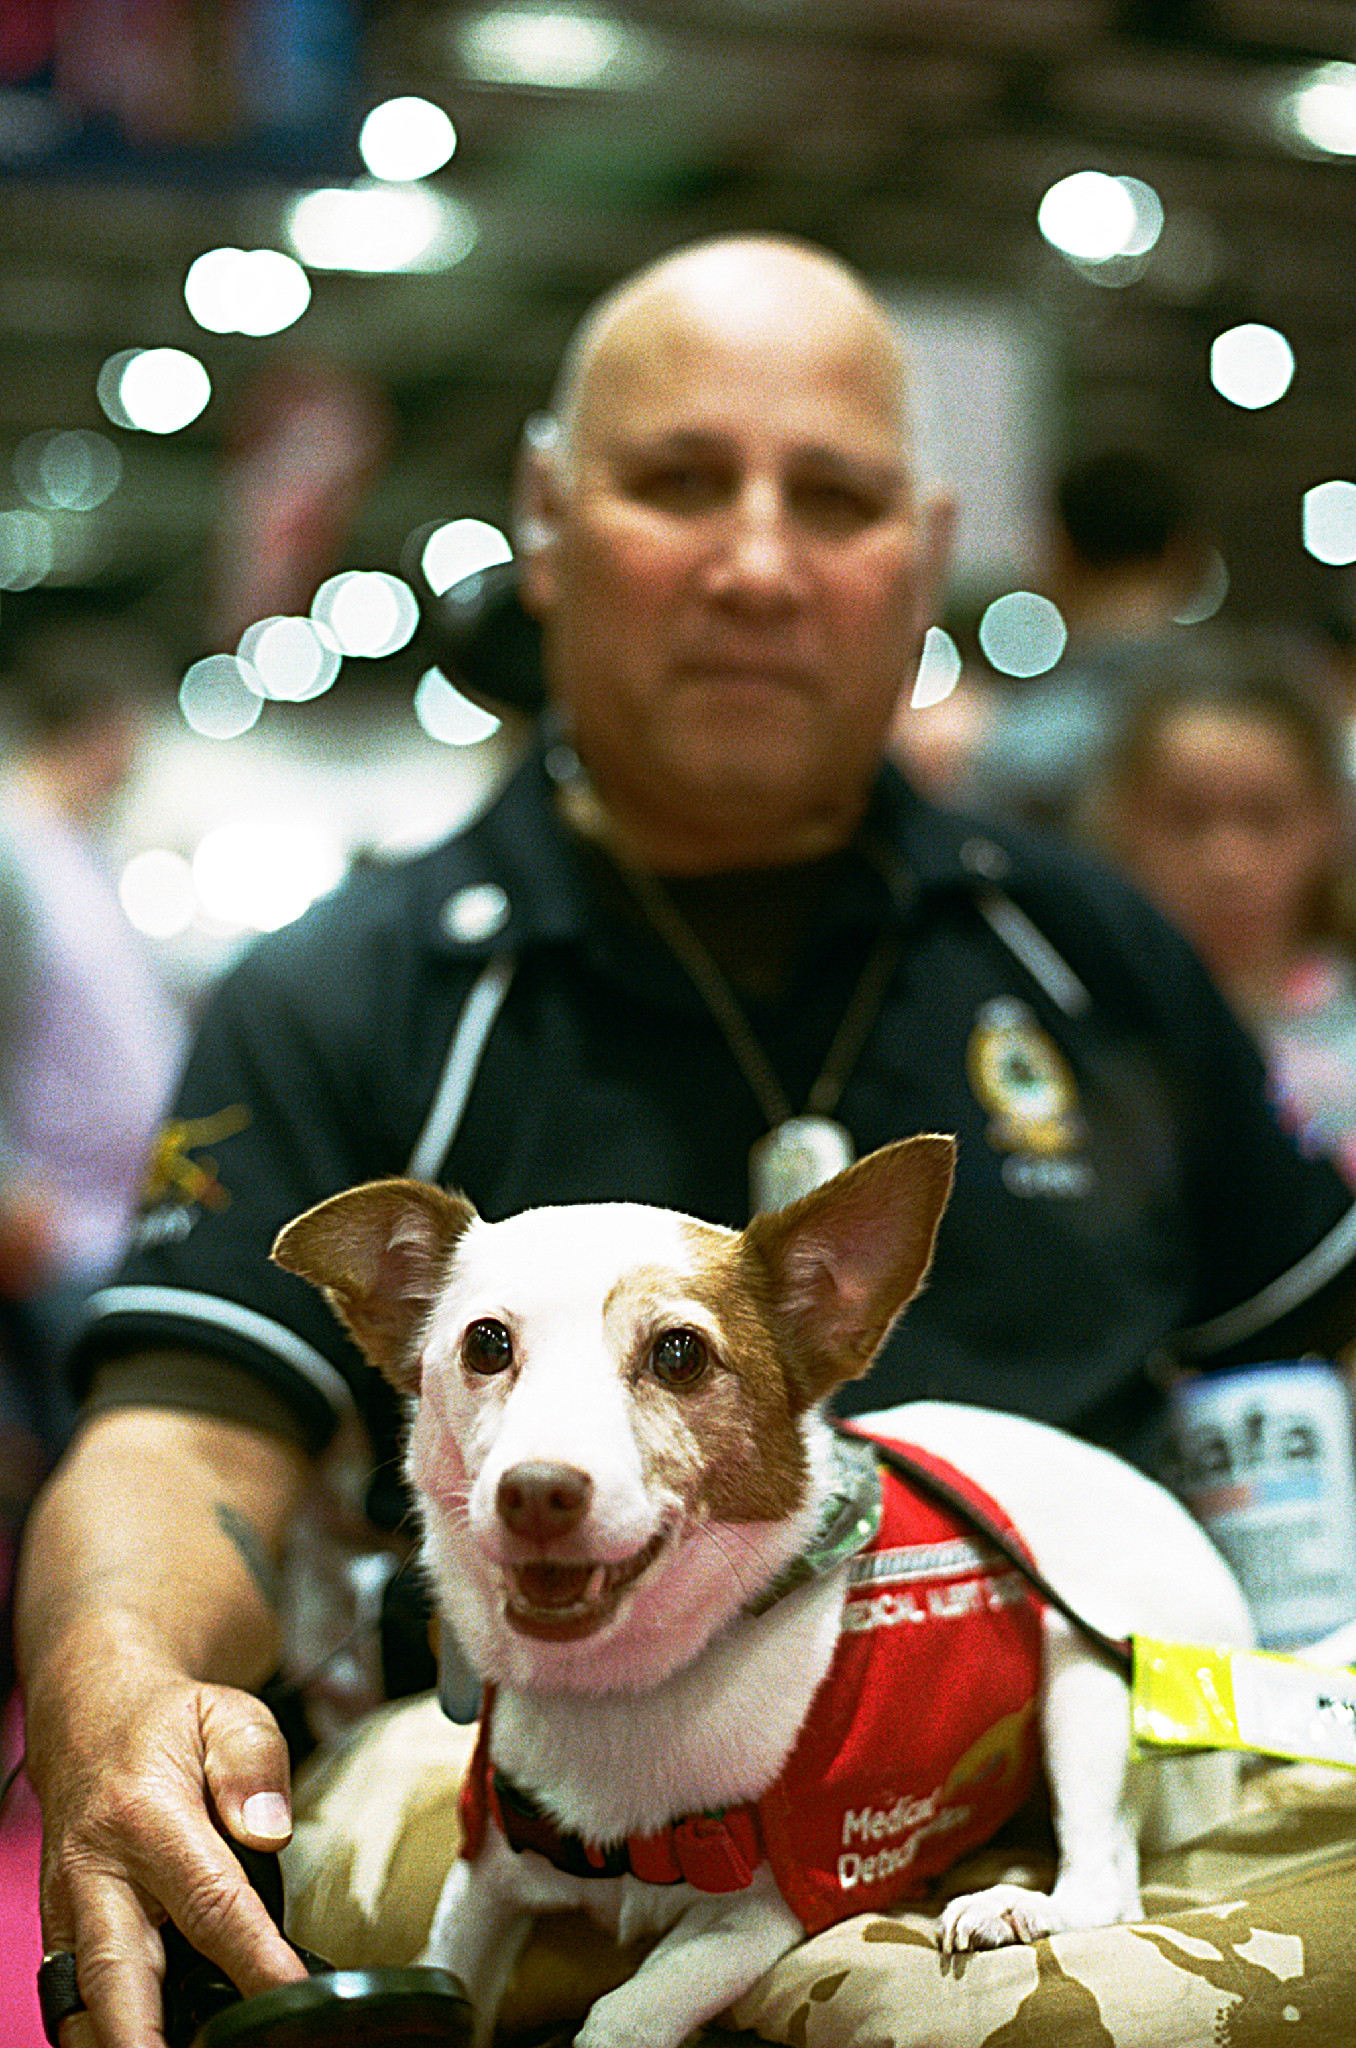 Medical Detection Dog  His job was to alert his owner before a painful seizure.giving him enough time to take his medication and prevent them all together, he can also drive the wheelchair.